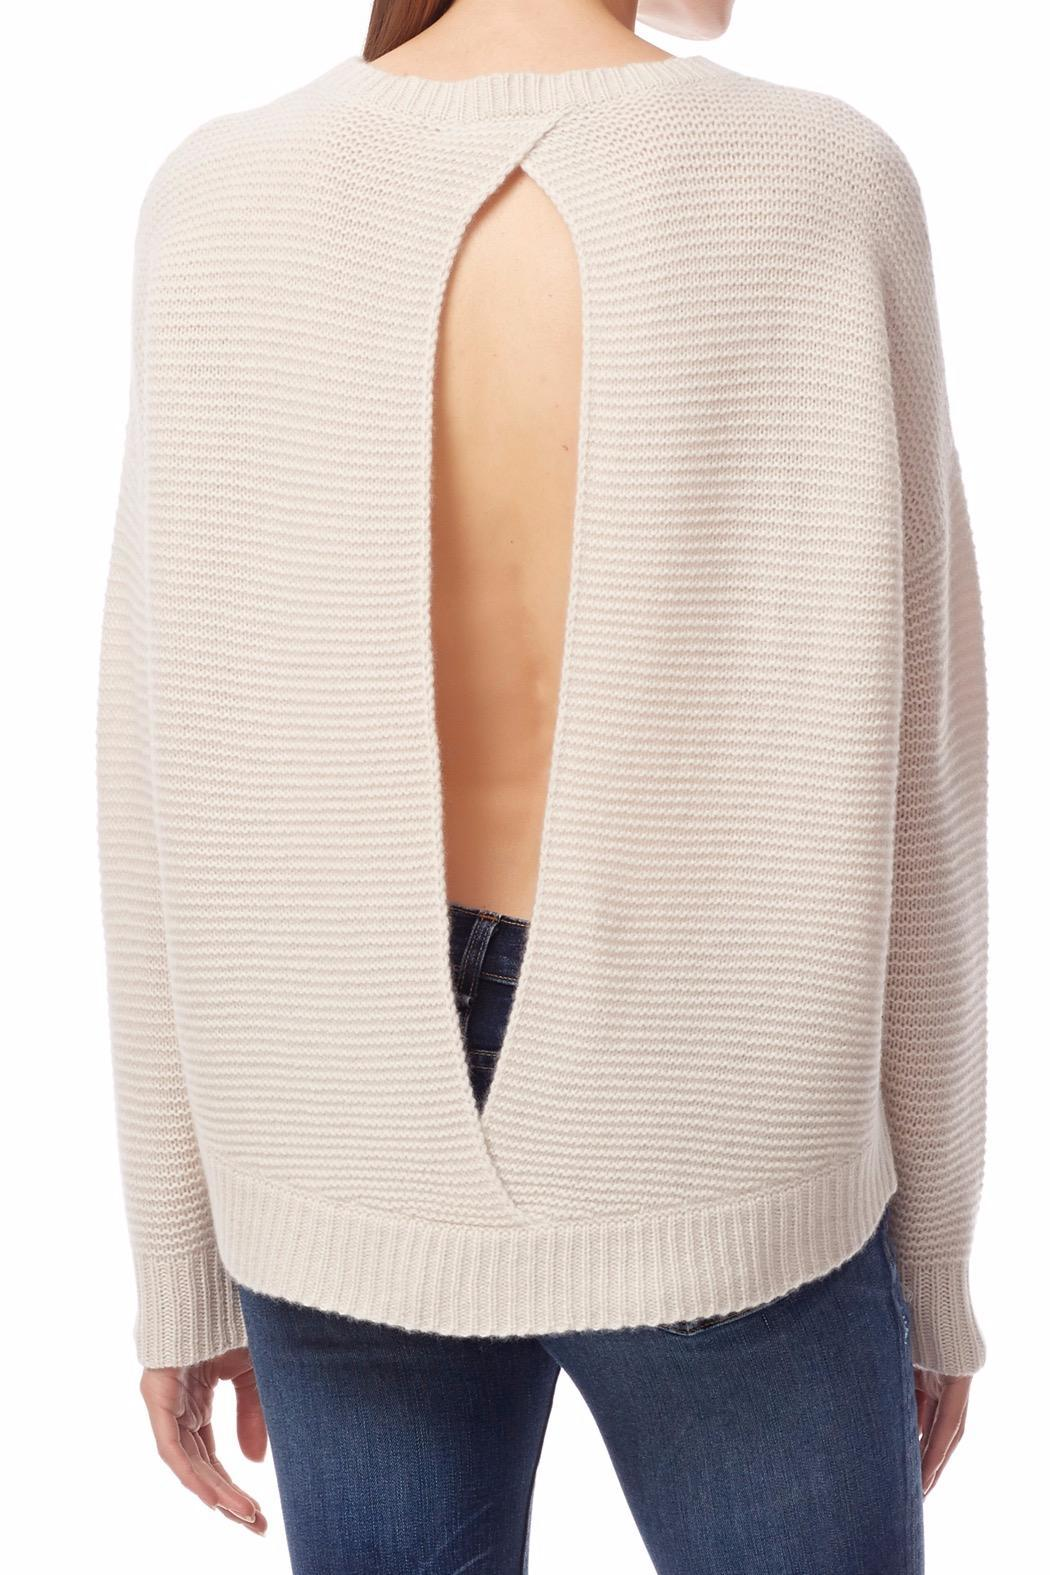 360 Cashmere Open Back Sweater from Houston by RainTree Boutique ...